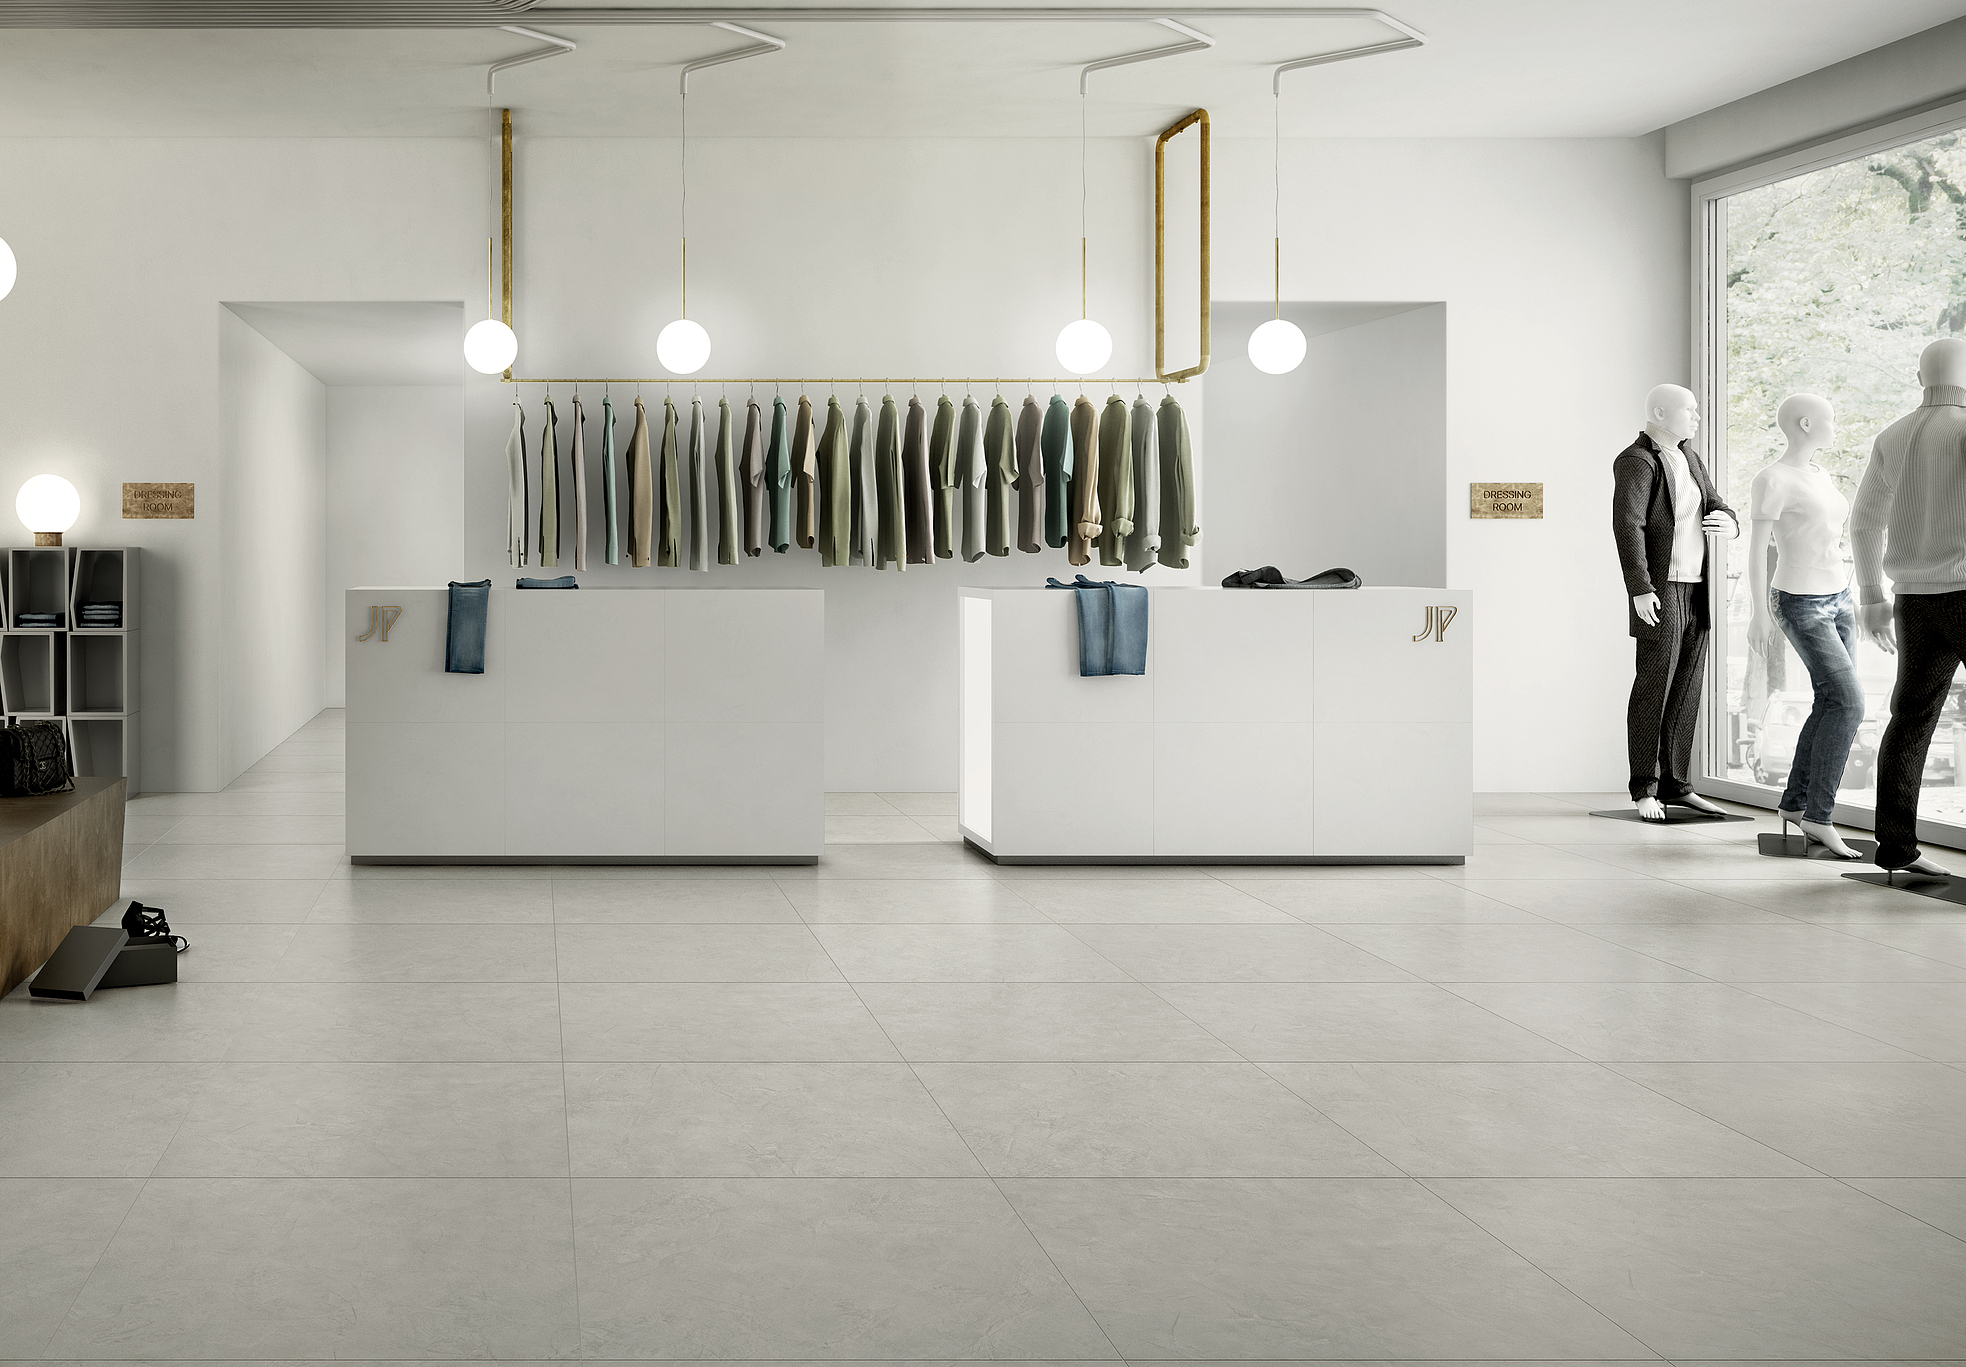 Hd Design Resine.Resine By La Fabbrica Photo 3 From 57 In Italy Delivery